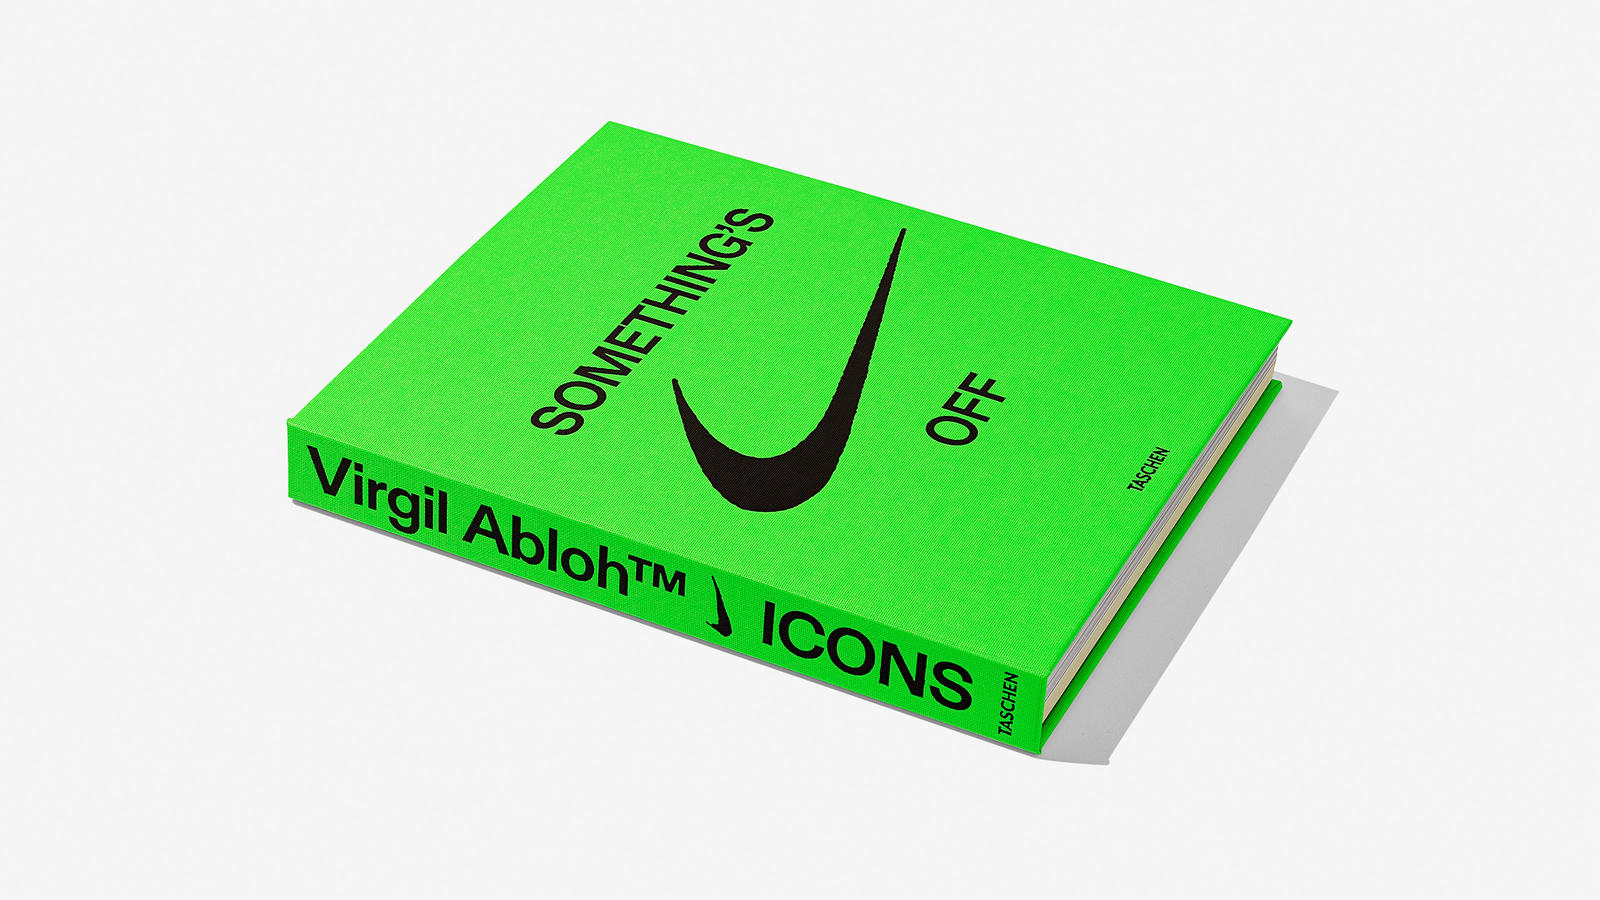 Nike Virgil Abloh Taschen ICONS Book 8